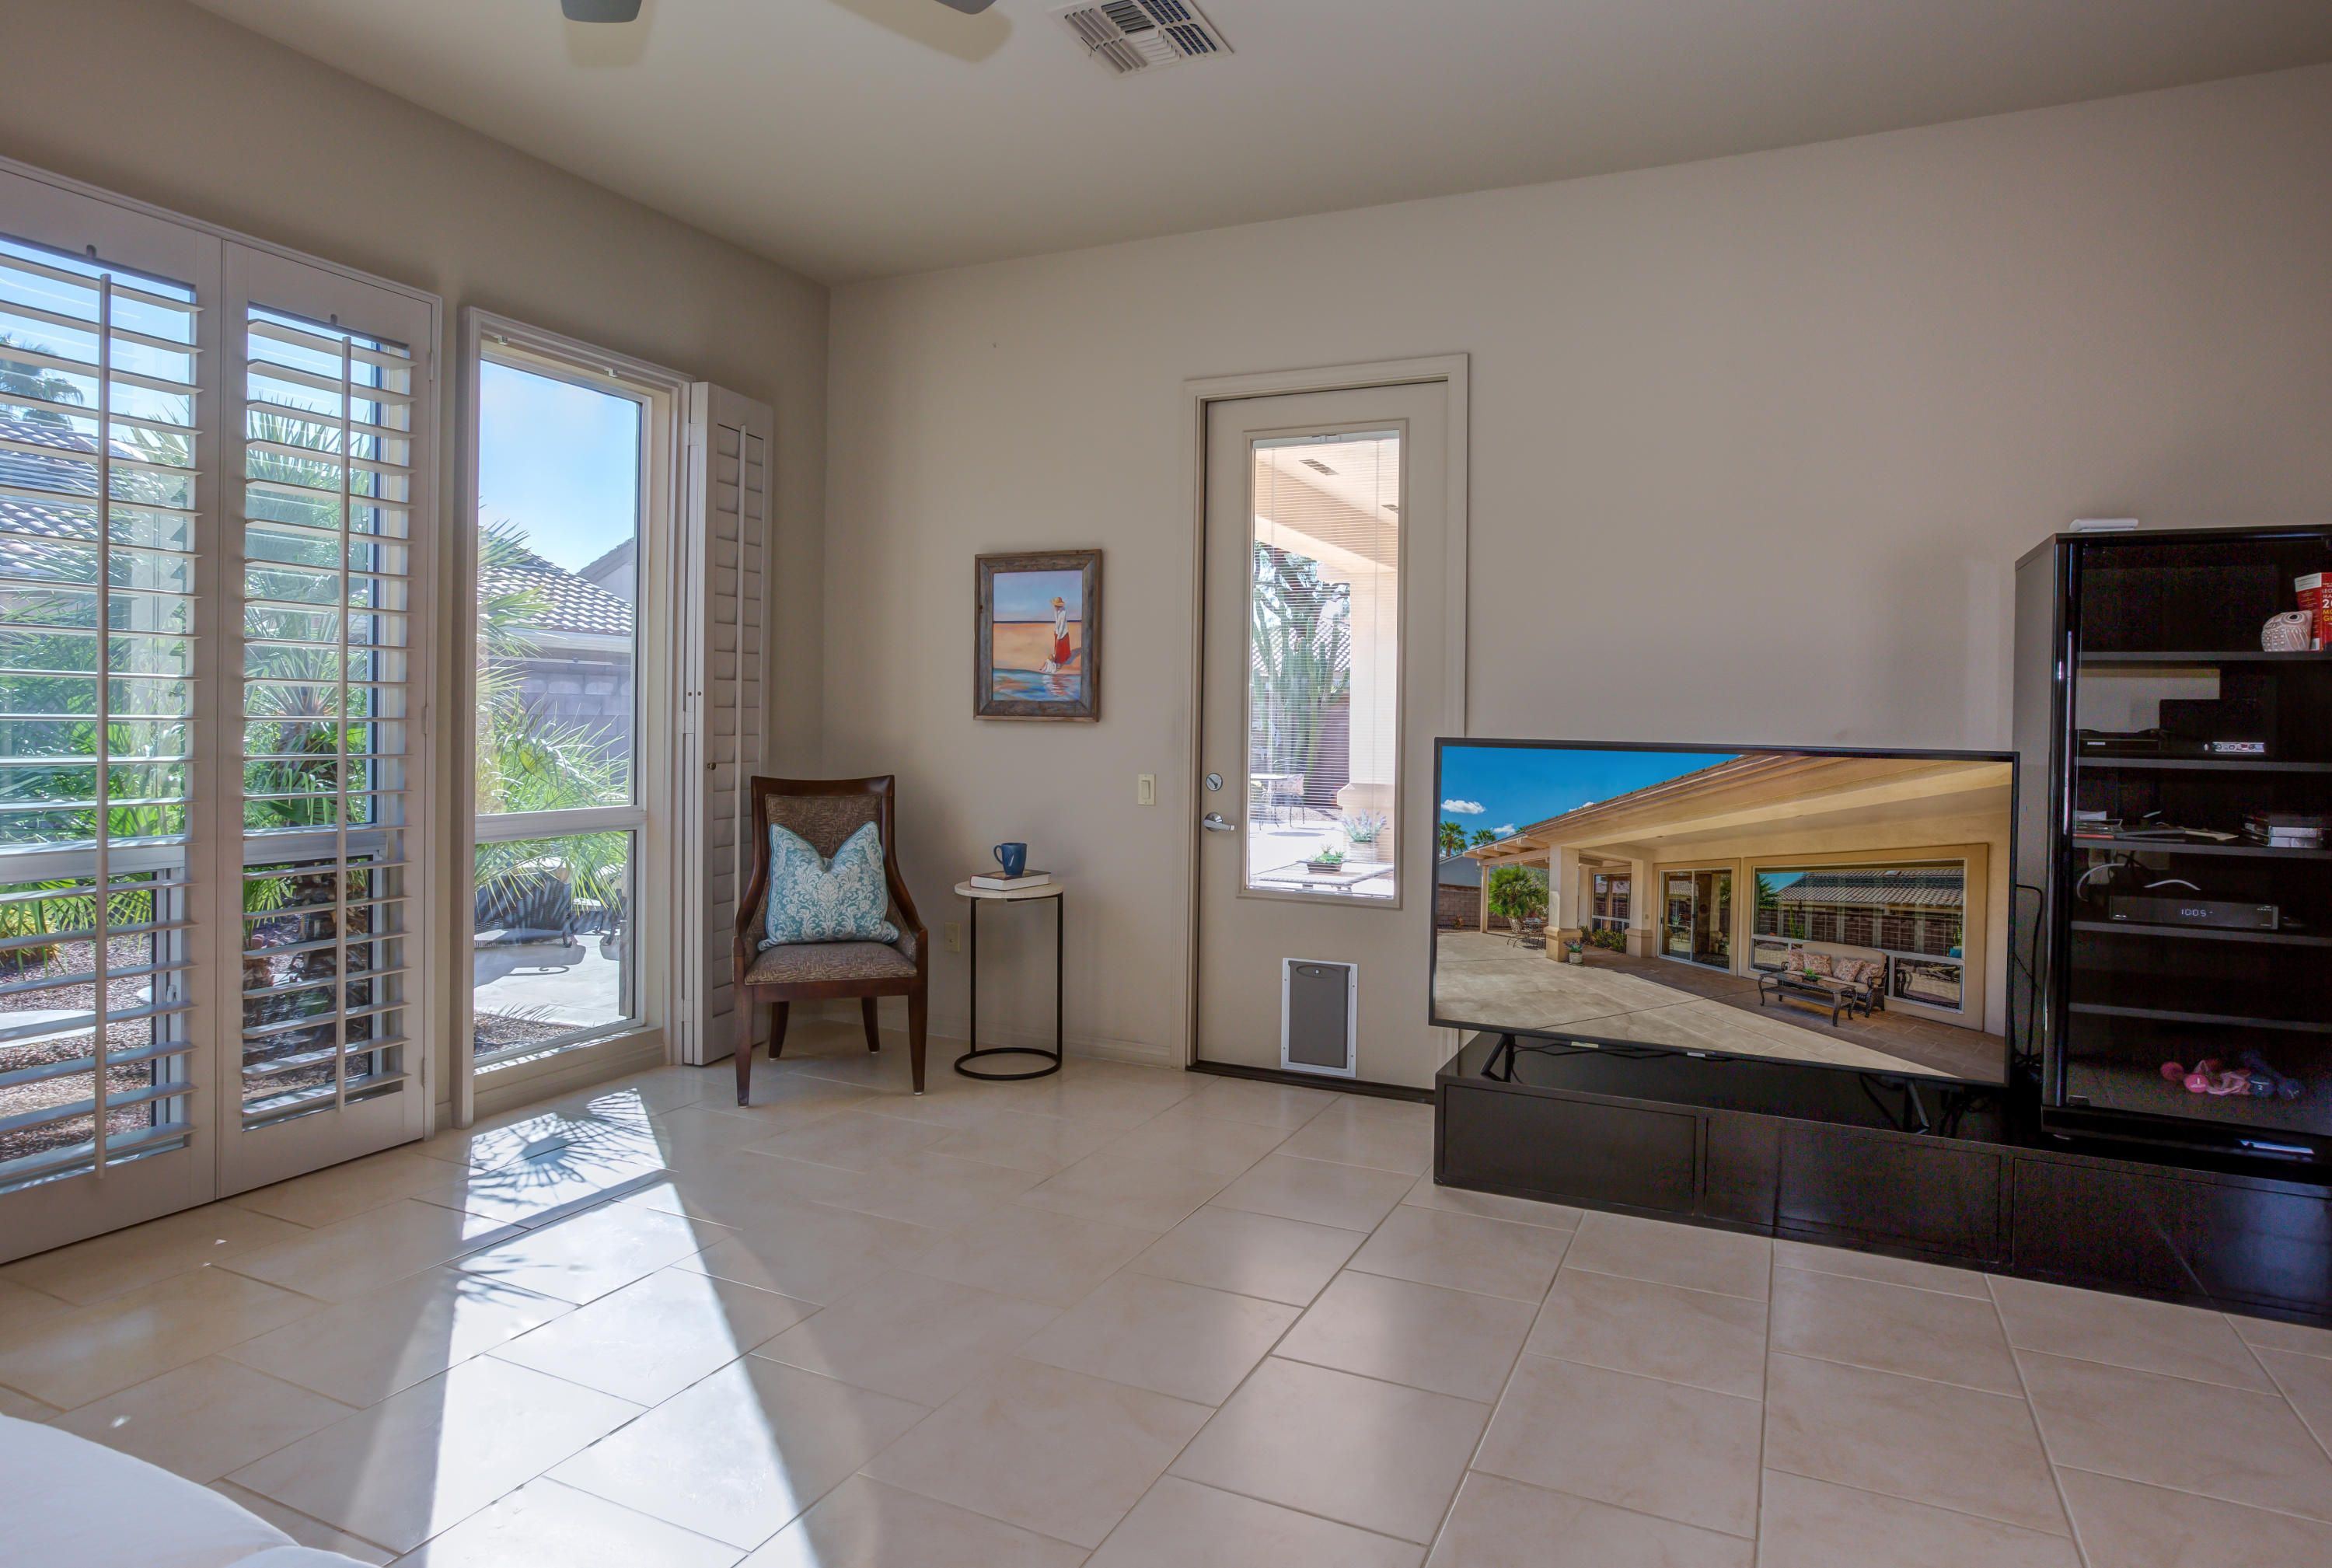 35844 Cumberland Court, Palm Desert, California 92211, 2 Bedrooms Bedrooms, ,3 BathroomsBathrooms,Residential,For Sale,35844 Cumberland Court,219042810